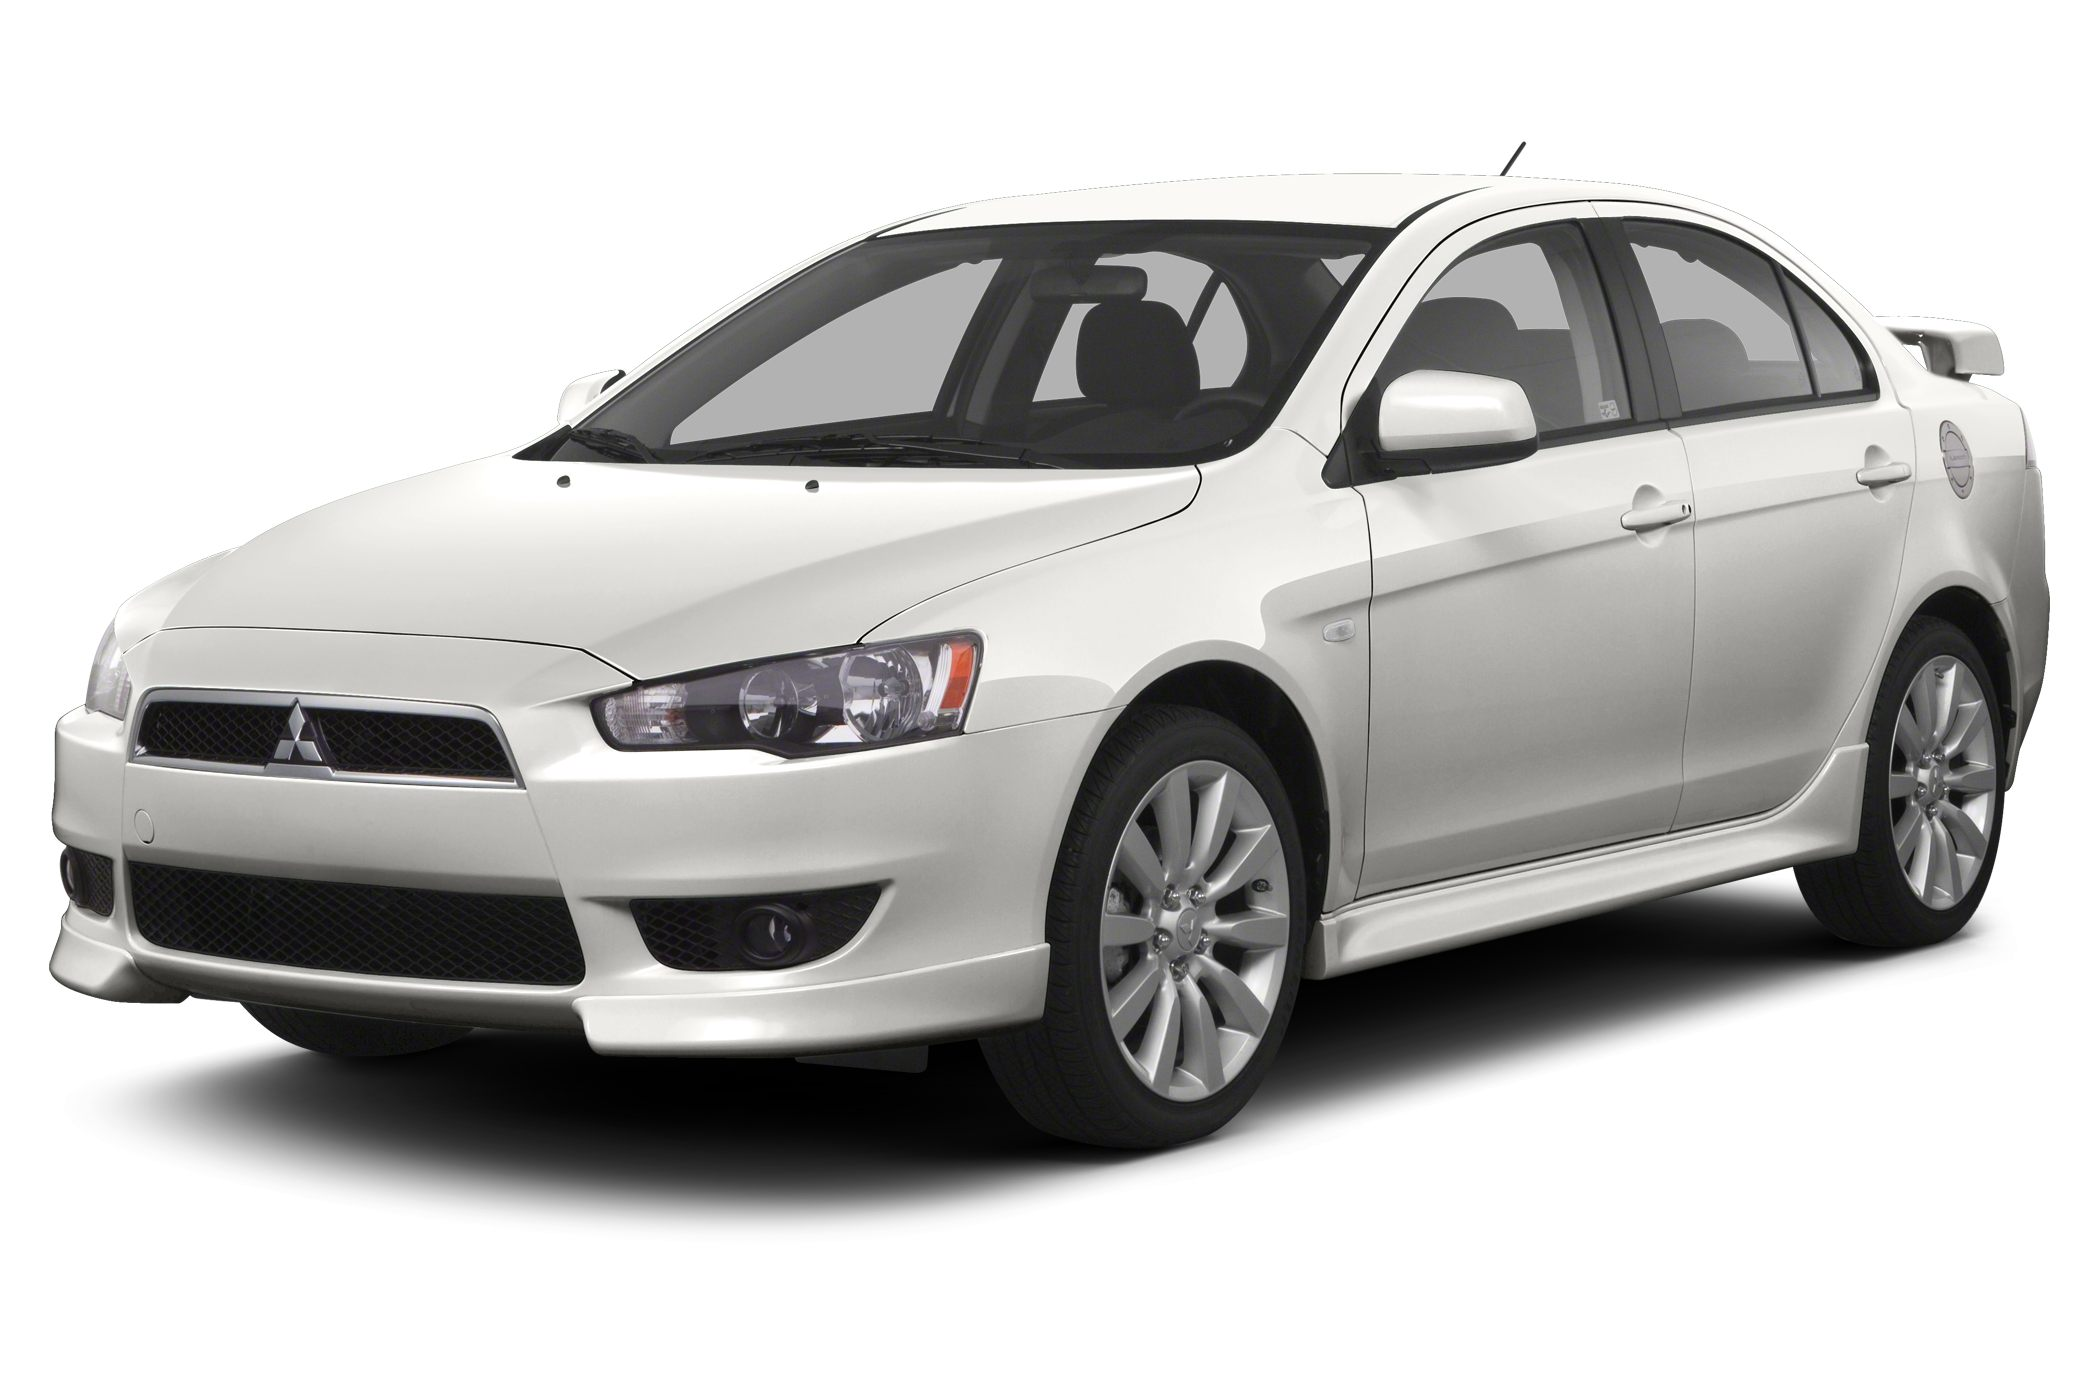 2013 Mitsubishi Lancer ES This 2013 Mitsubishi Lancer ES will sell fast Save money at the pump kno